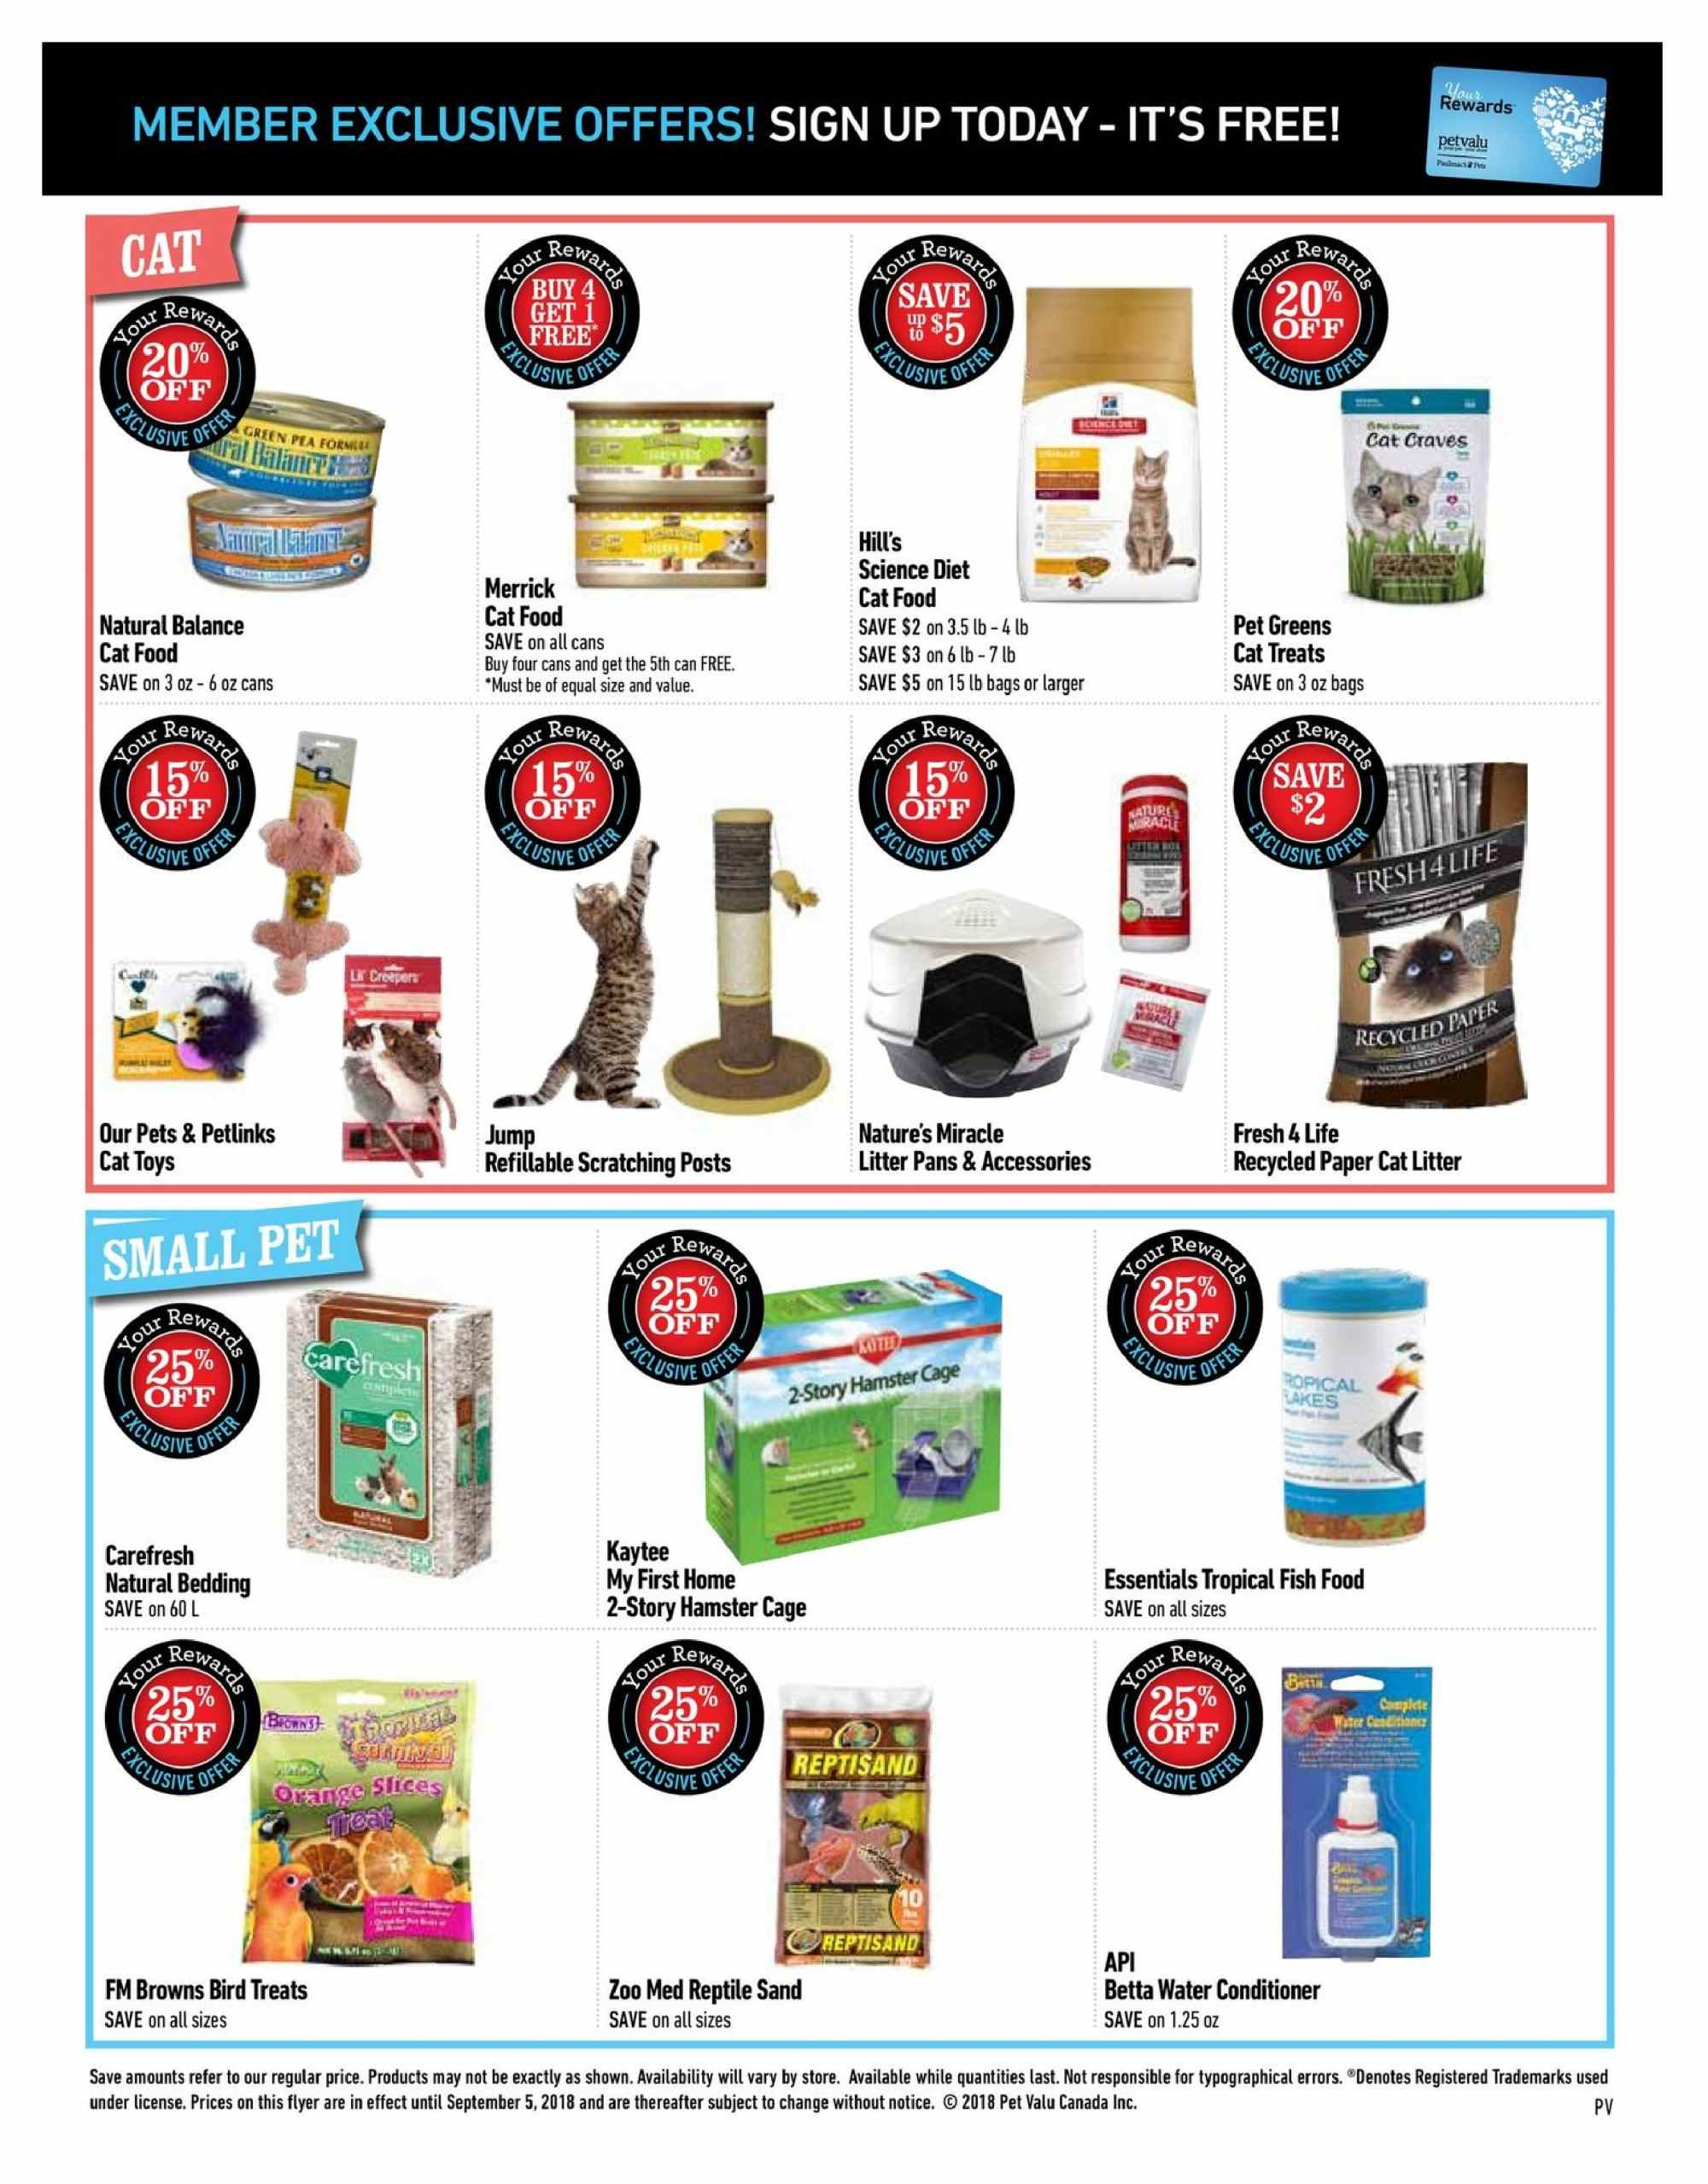 Pet Valu Flyer - August 13, 2018 - September 05, 2018 - Sales products - animal food, bag, bedding, cat food, cat litter, cat toys, conditioner, litter, merrick, science diet, pet, toys, four, pets. Page 2.